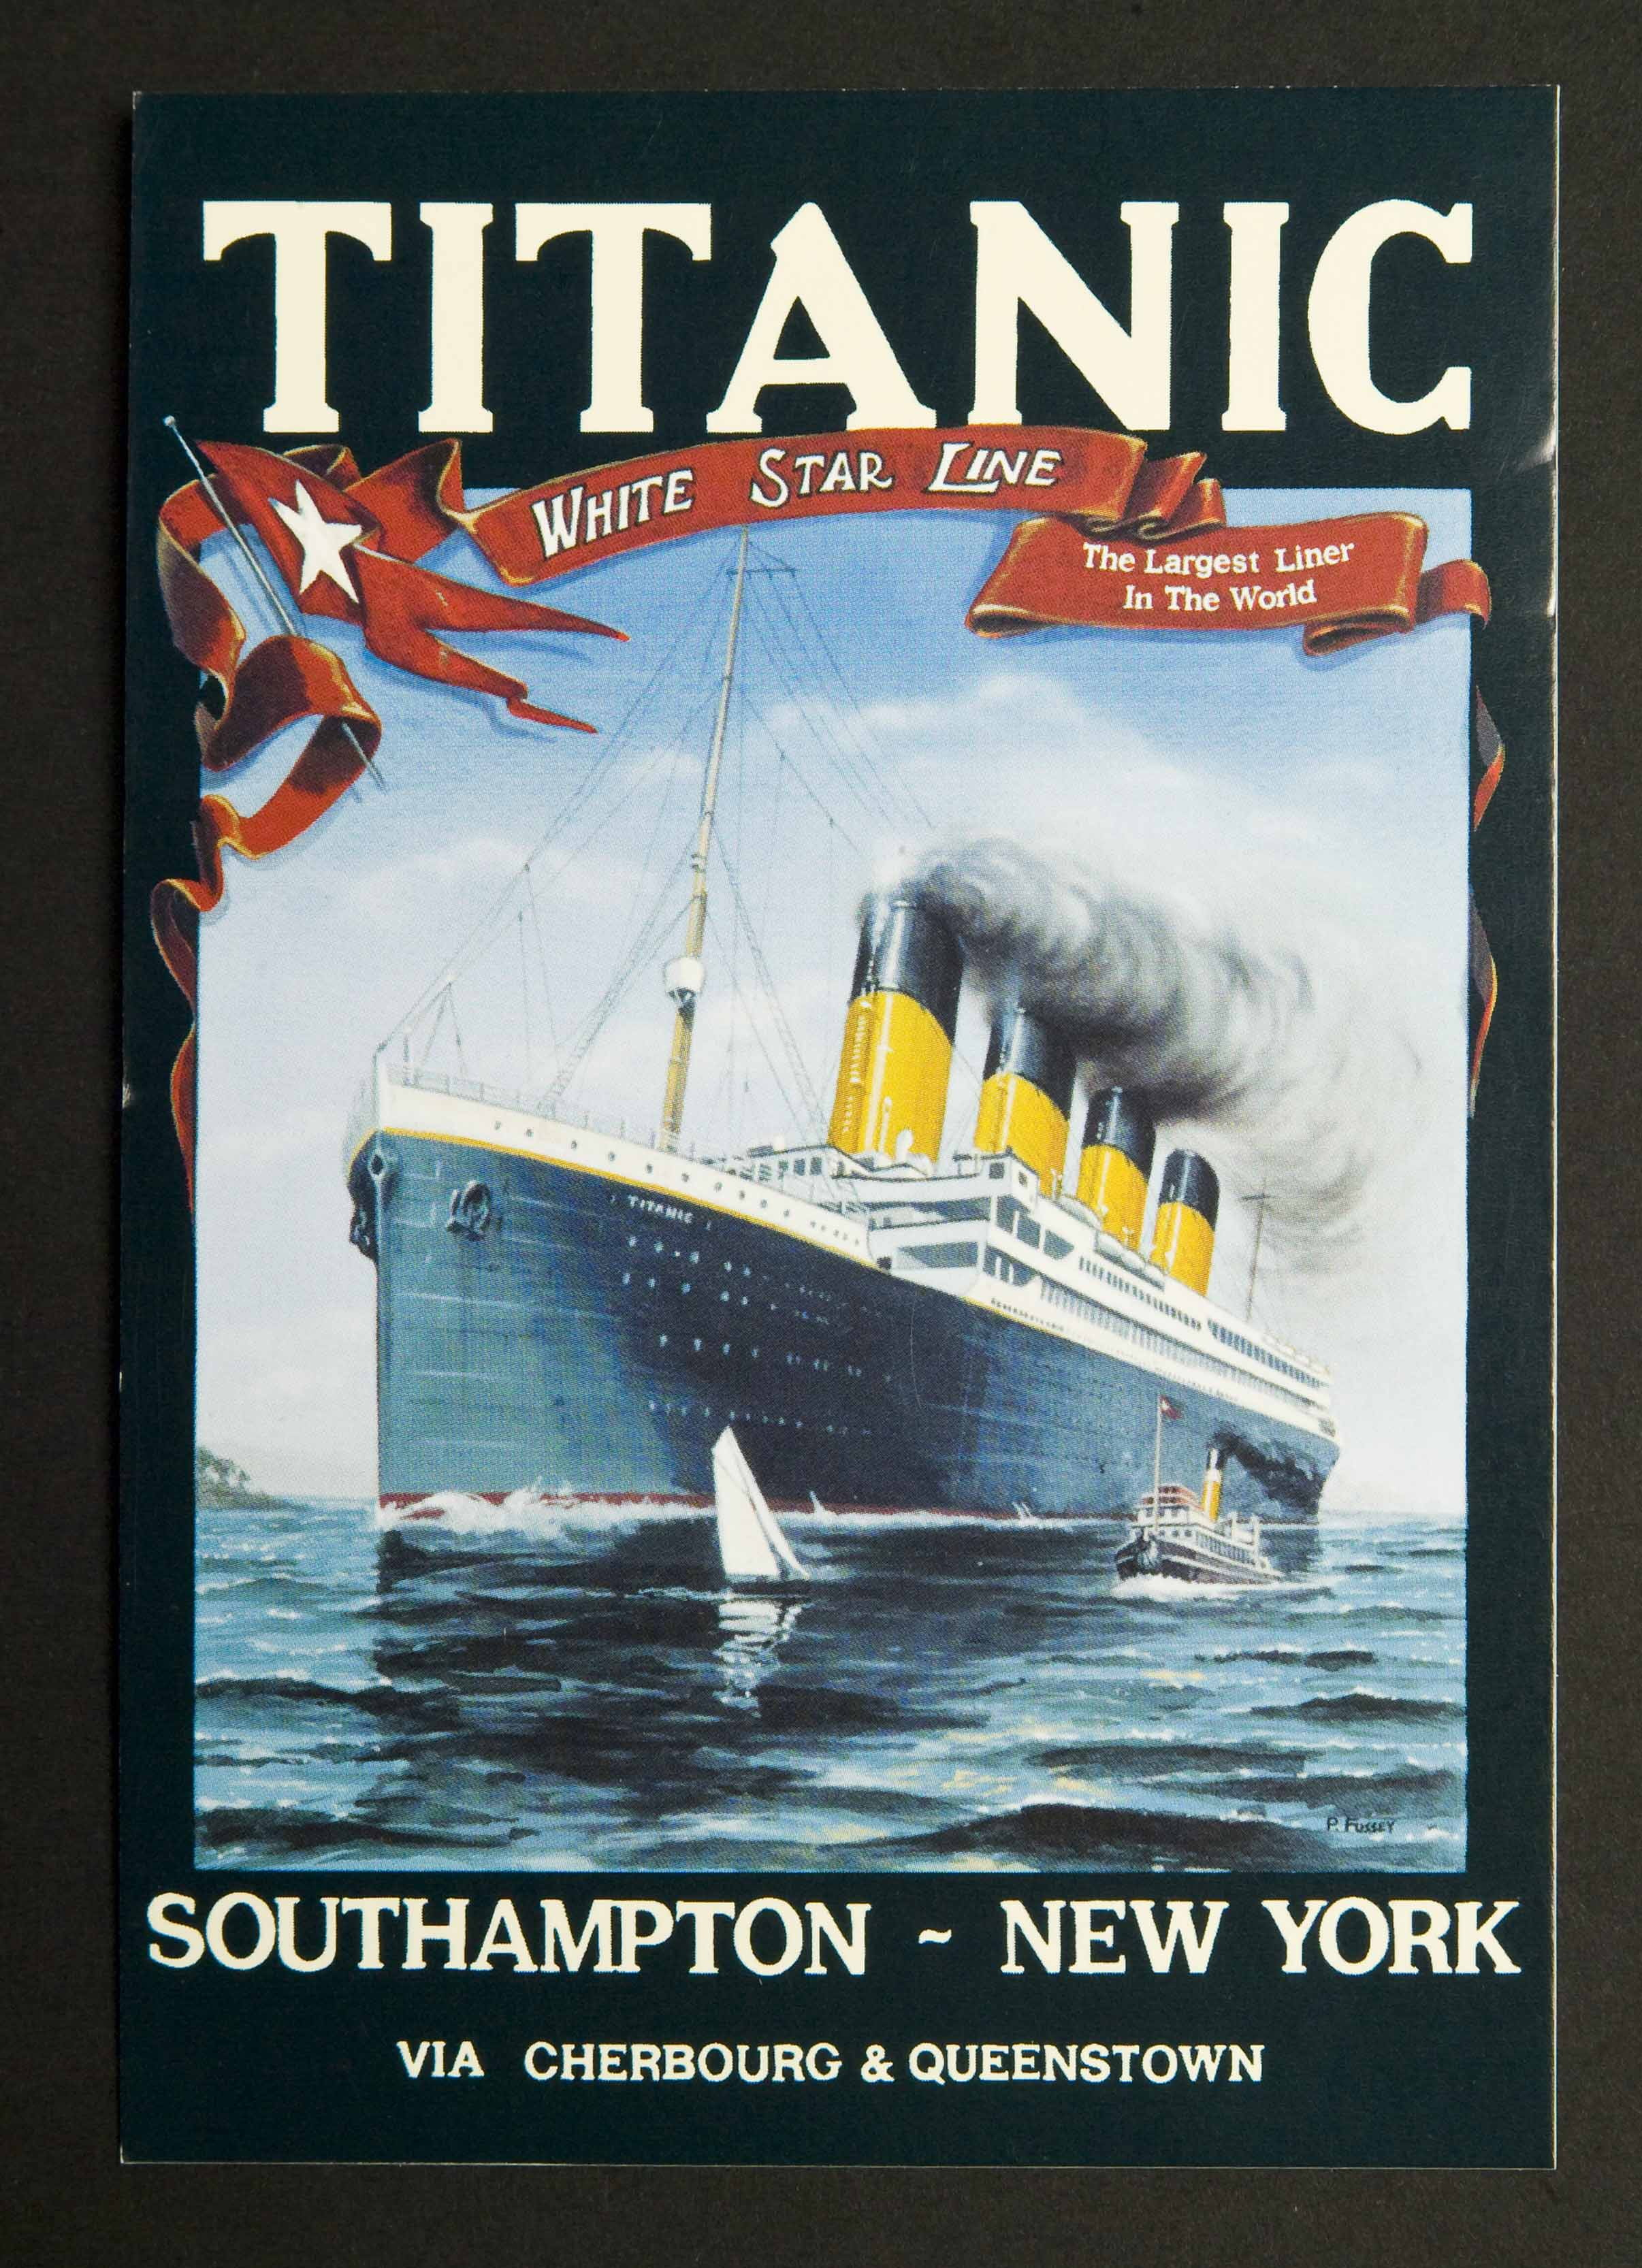 White Star Line Titanic Postcards (6)